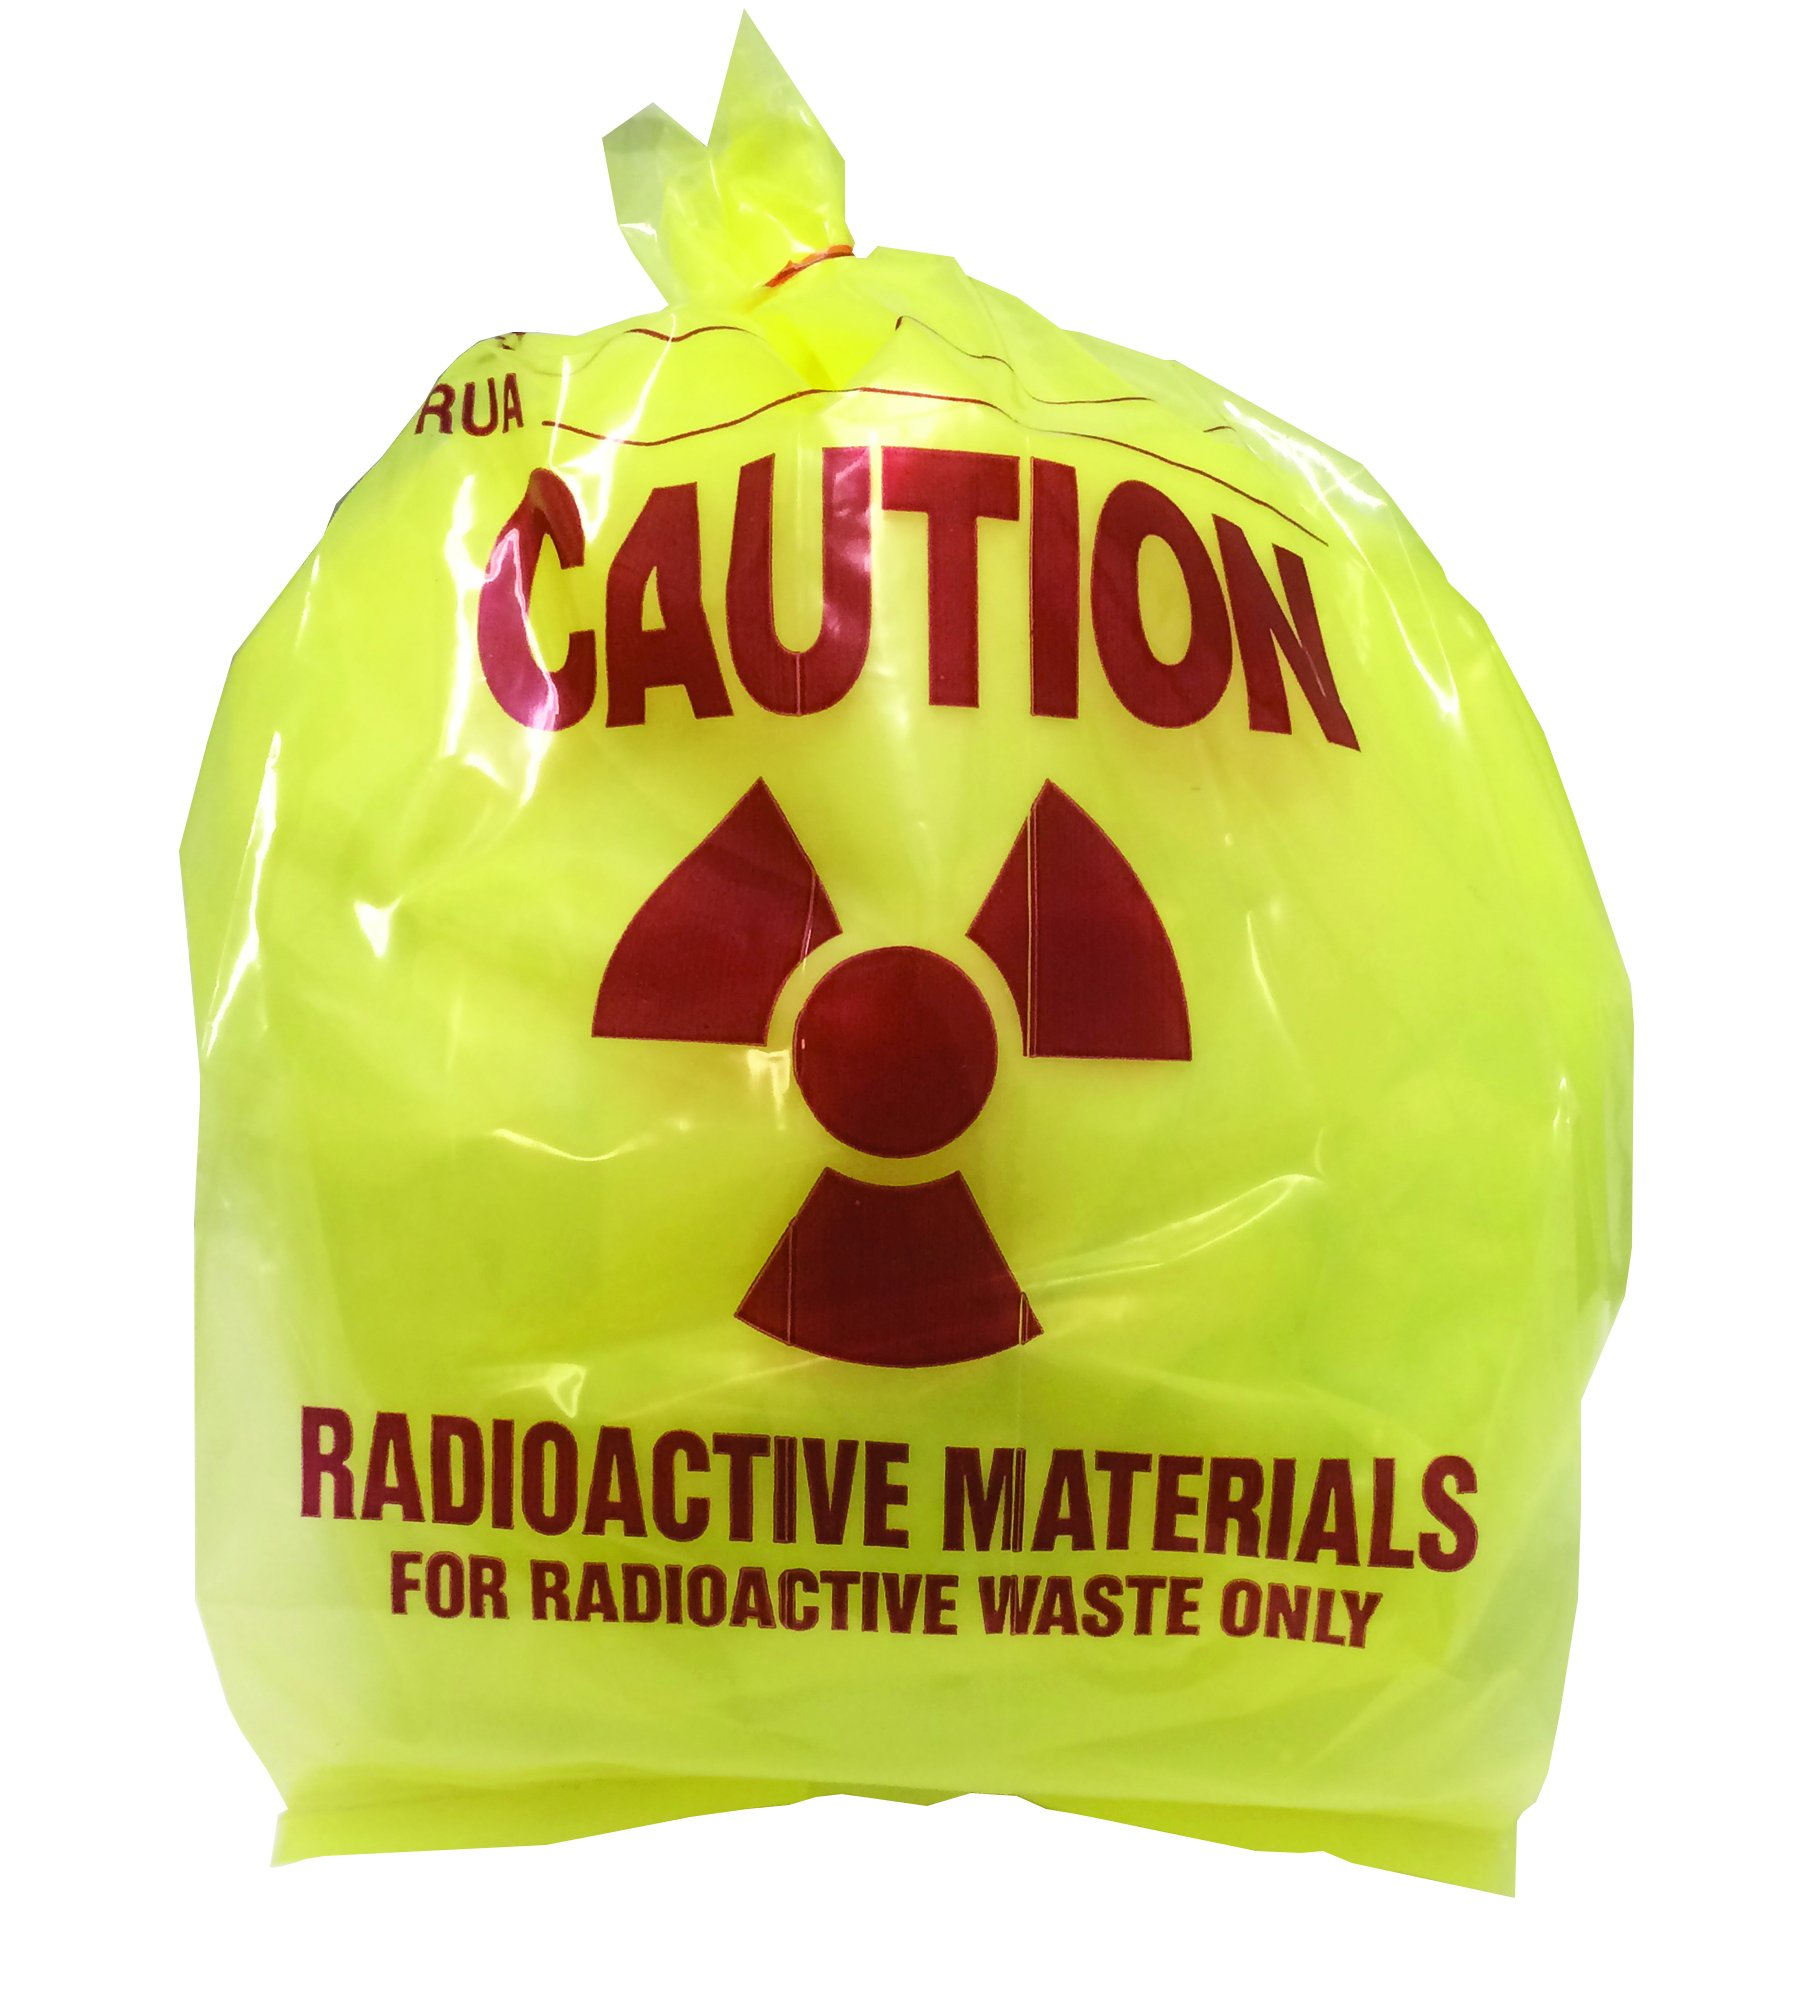 Radioactive Waste Disposal Bags, 3 Mil Thick, 8 x 6 x 15 Inches, Yellow Tint, Pre-Printed with Caution Message, 100 per Package by RPI